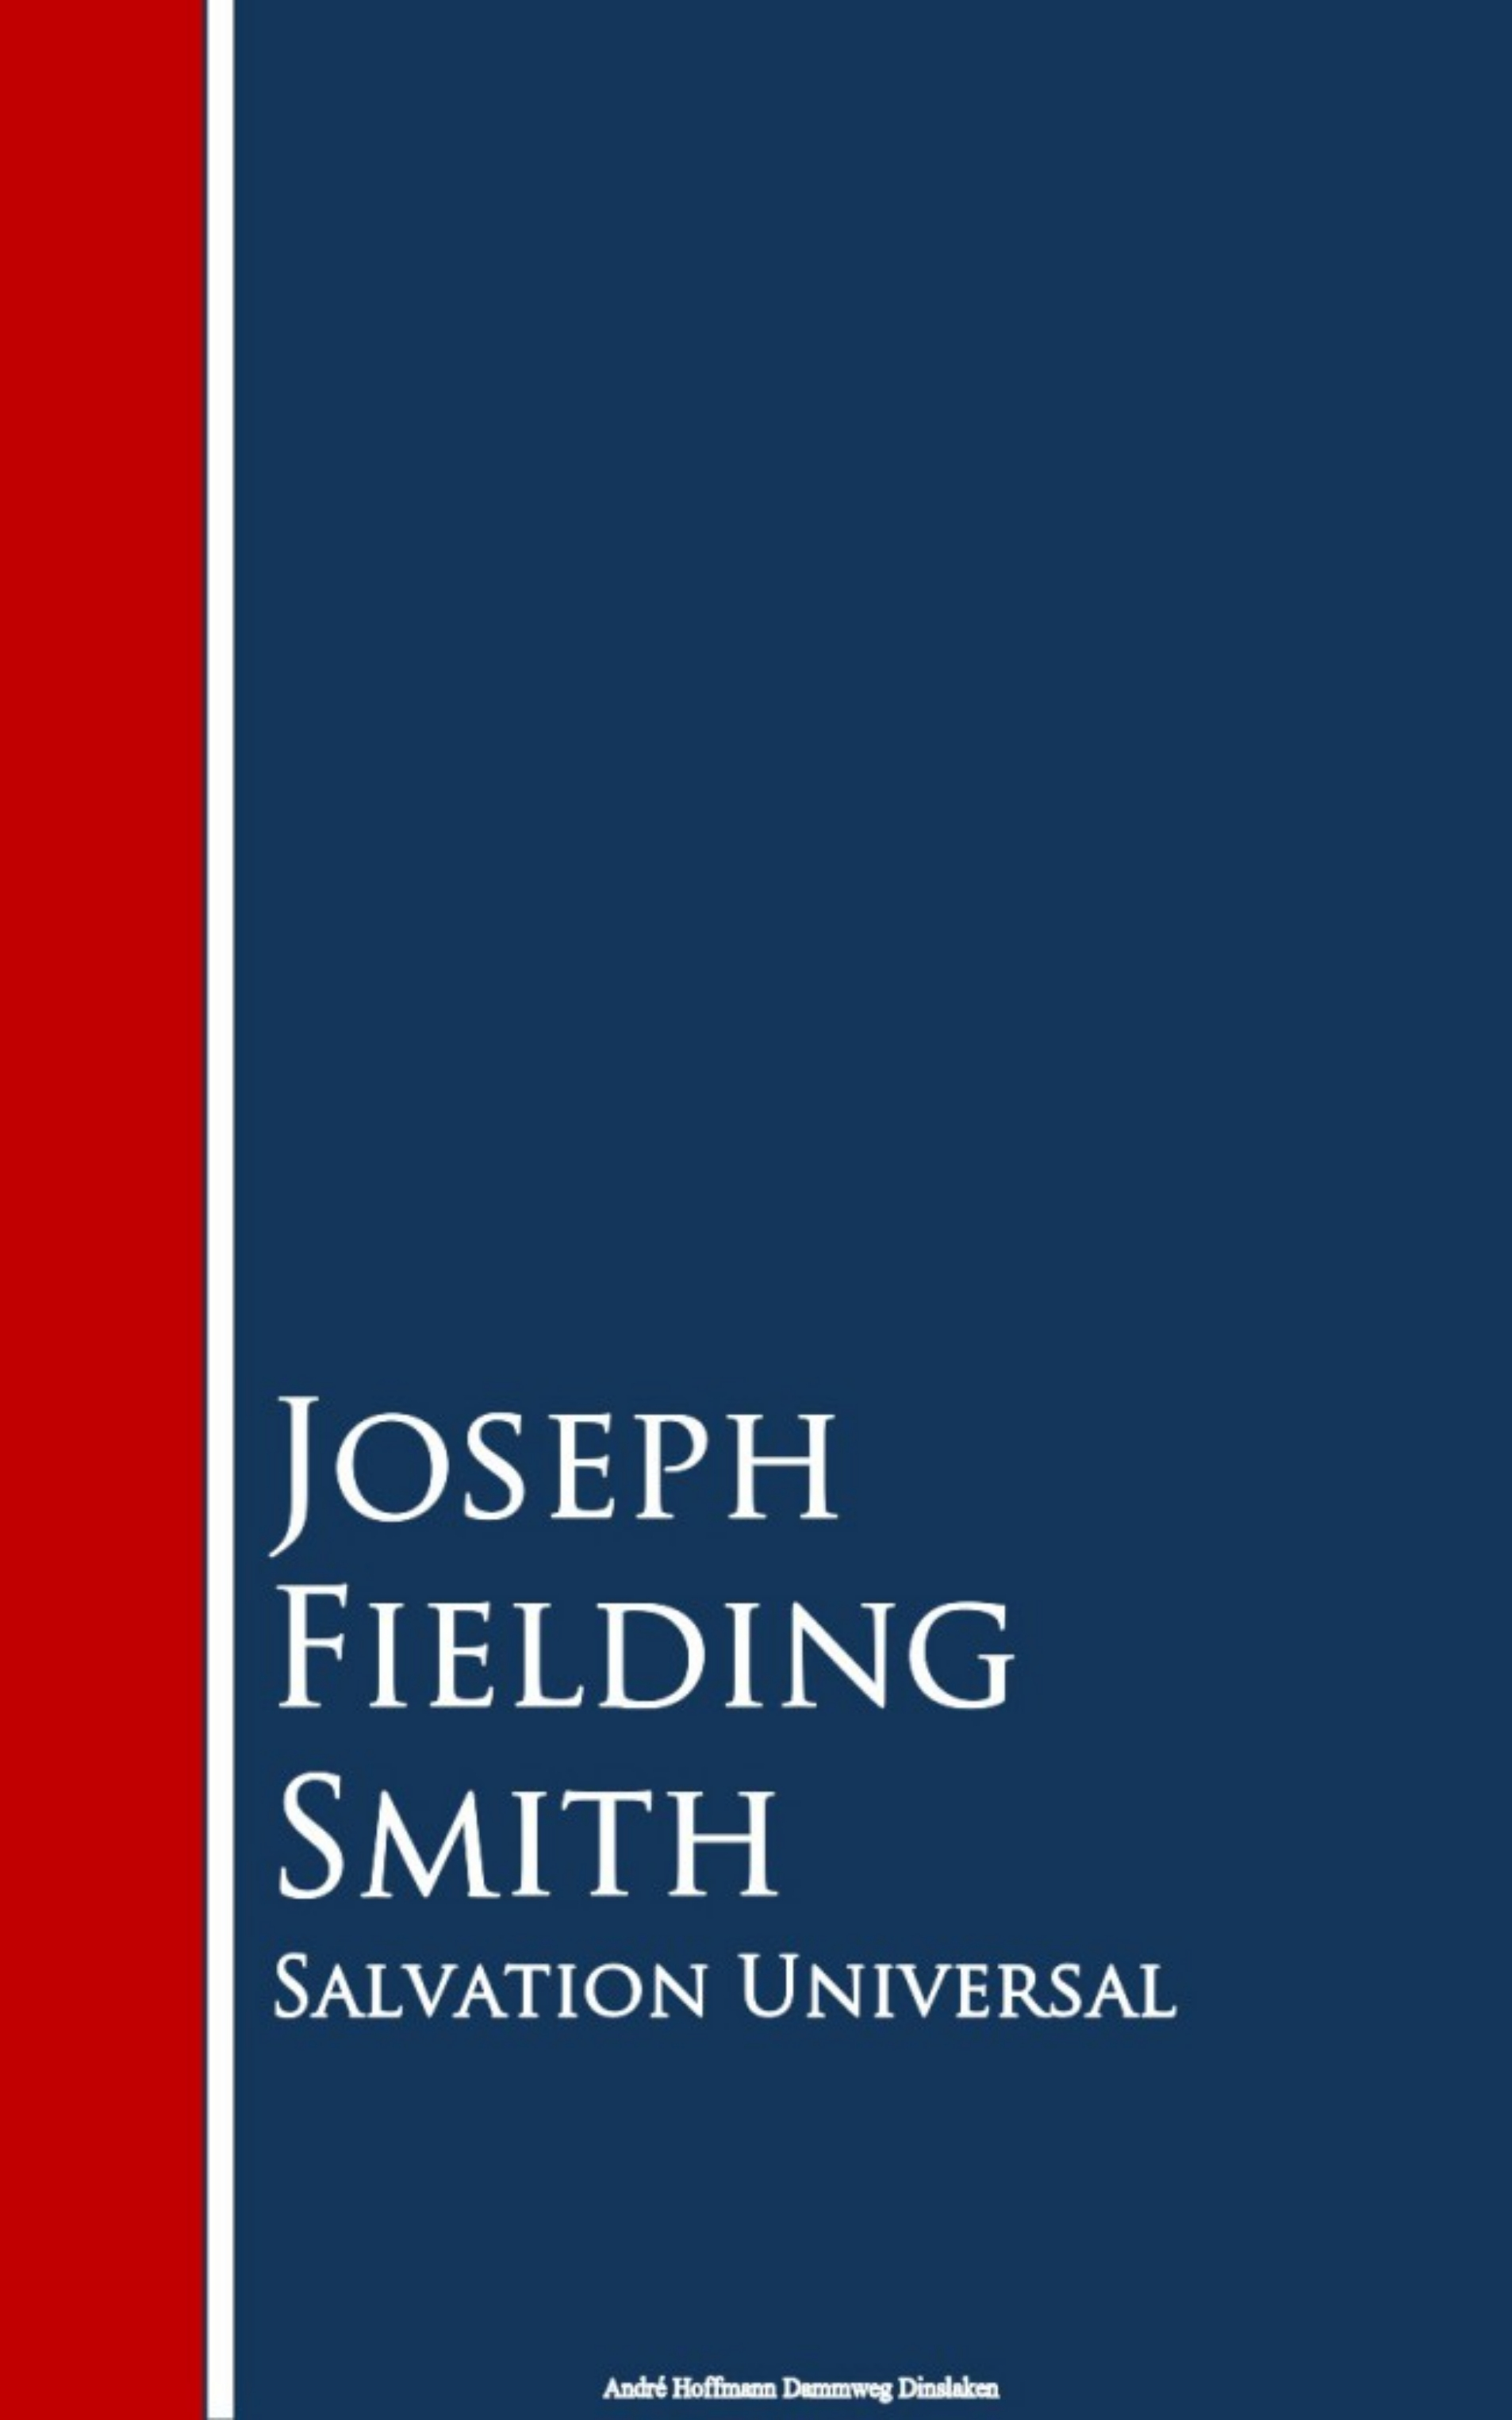 Joseph Fielding Smith Salvation Universal fielding henry joseph andrews